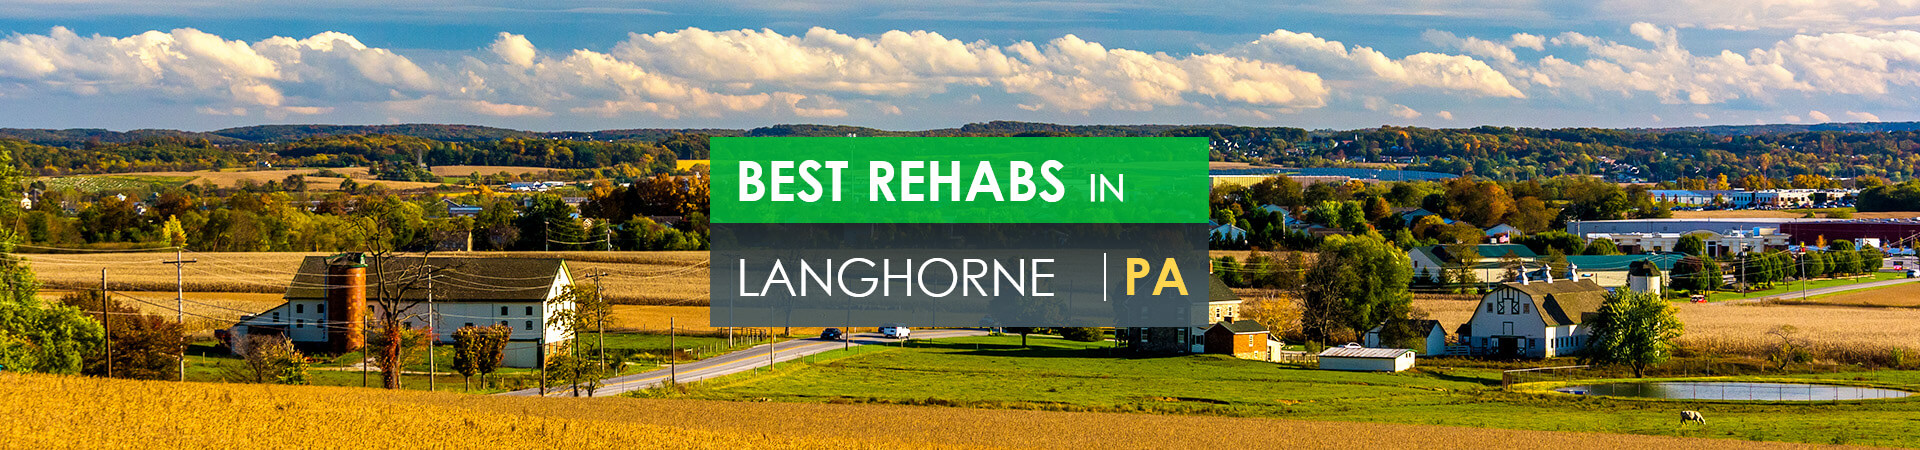 Best rehabs in Langhorne, PA